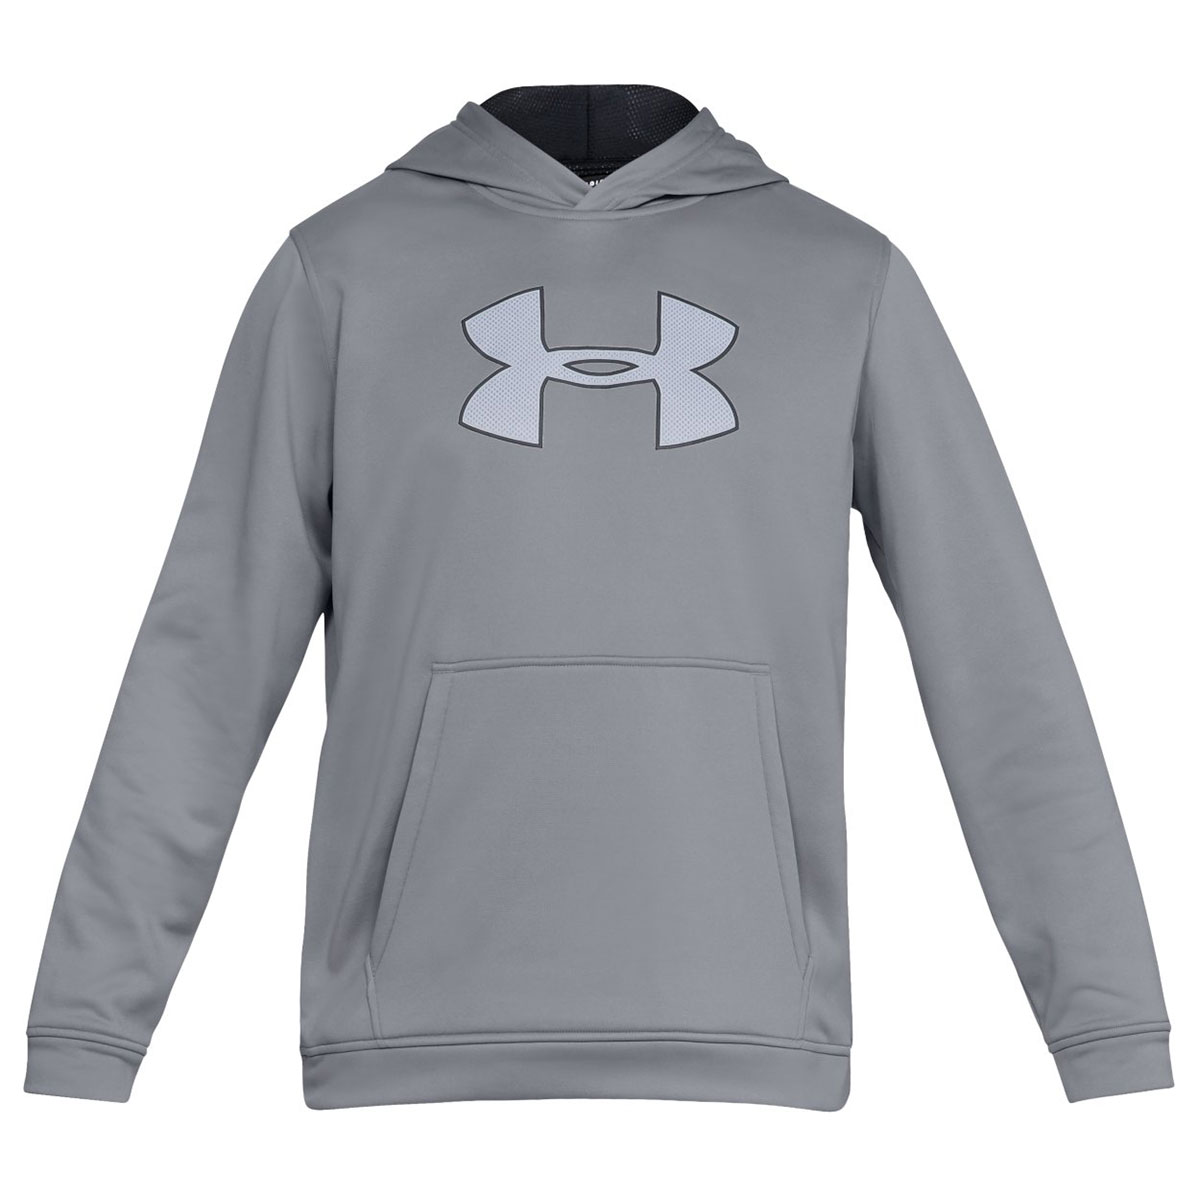 Under-Armour-Mens-Performance-Fleece-Graphic-Hoodie-Hoody-45-OFF-RRP thumbnail 8